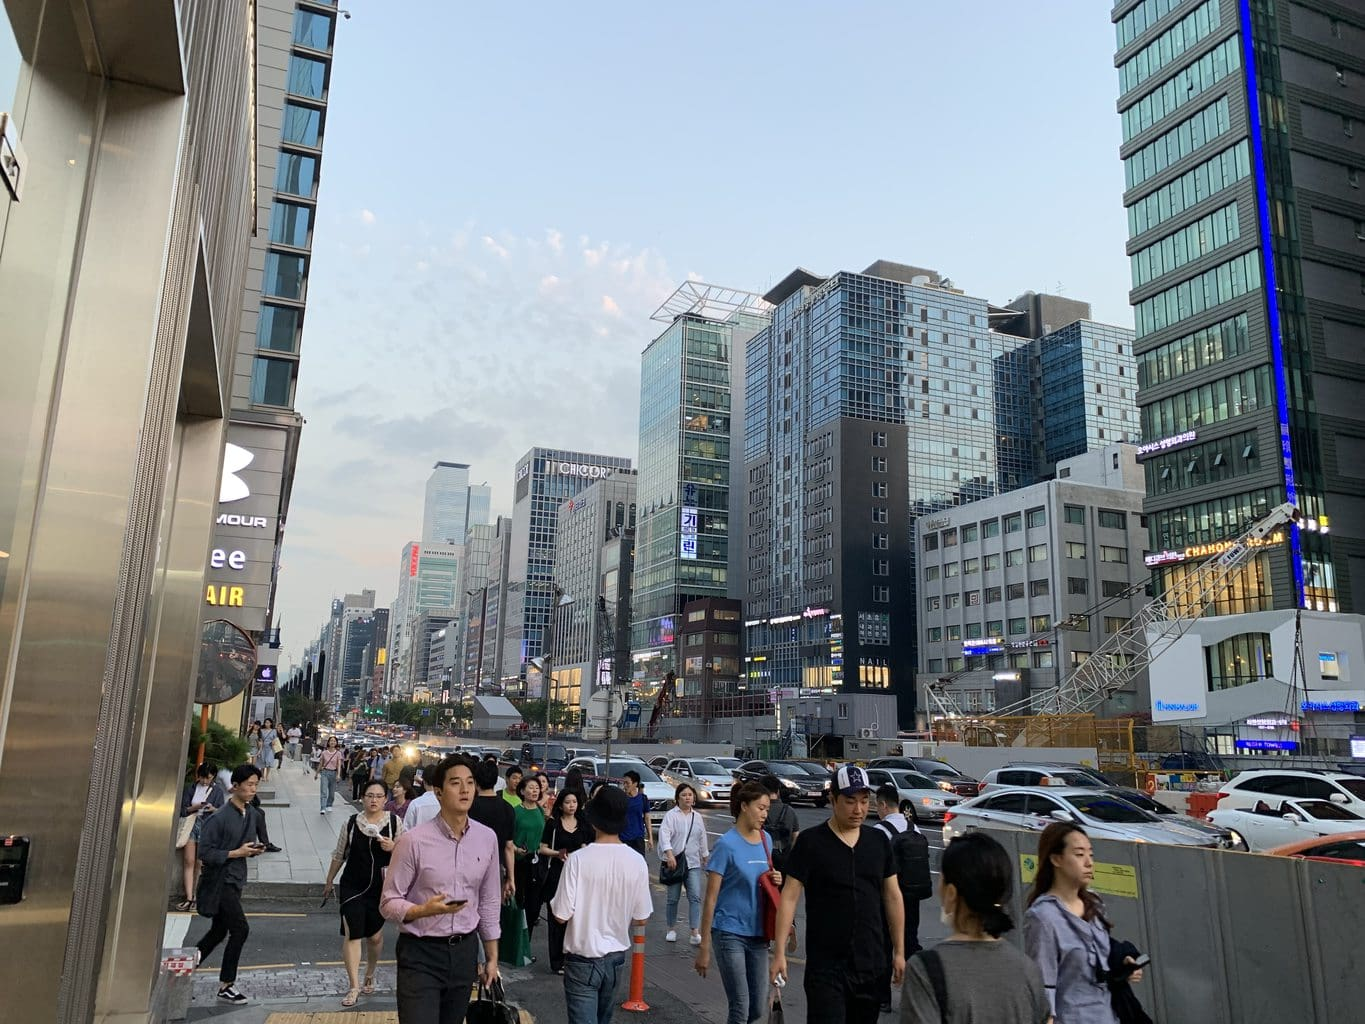 The main road in Gangnam